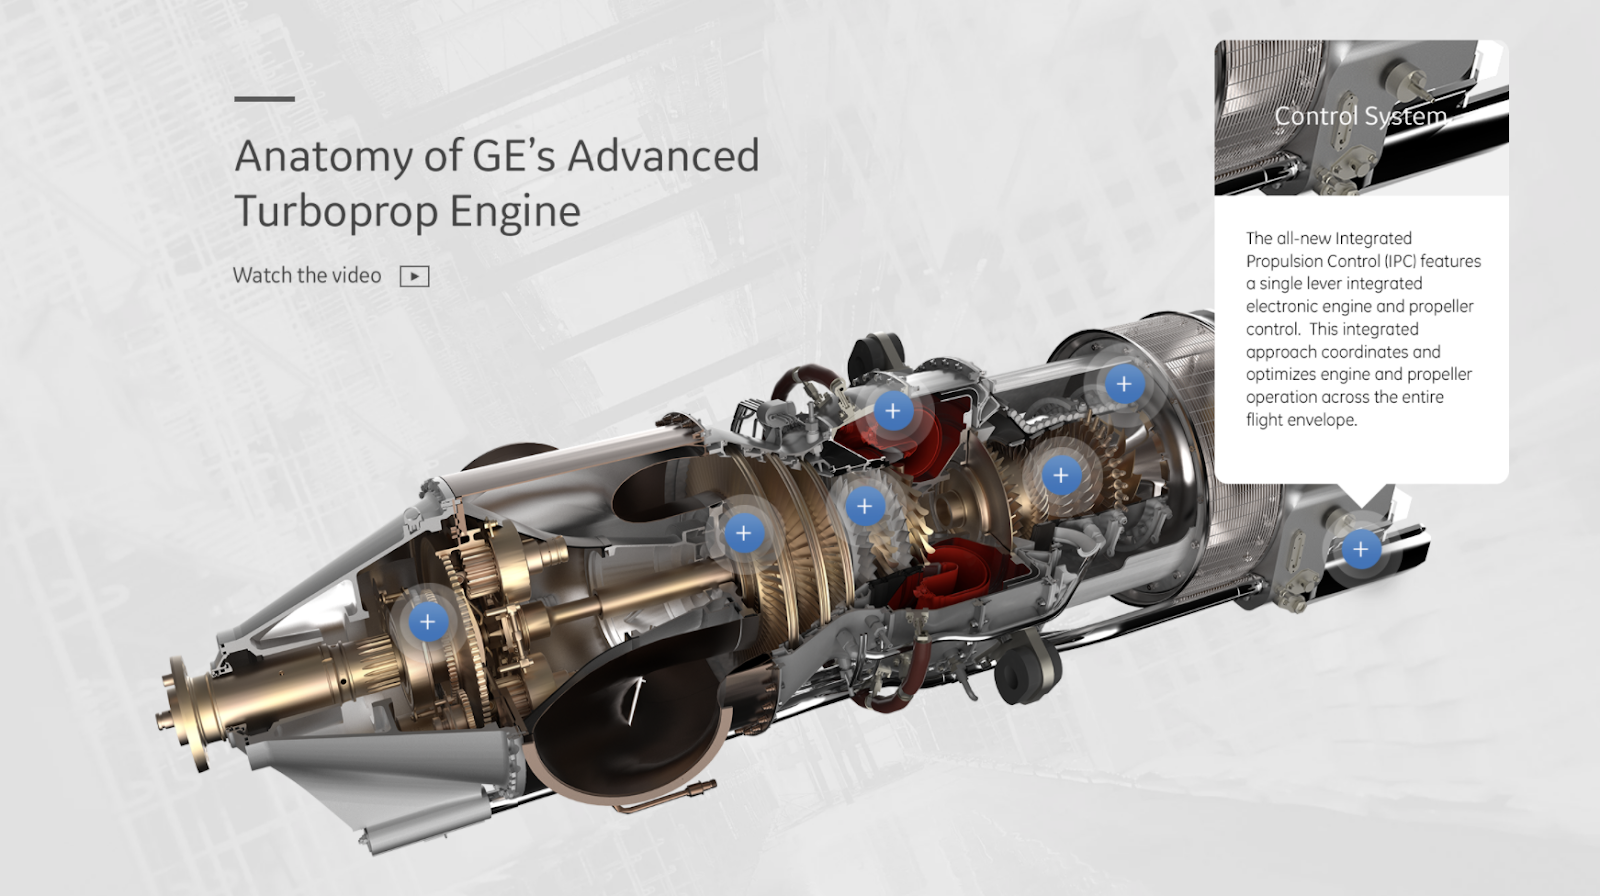 The anatomy of GE's Advanced Turboprop engine - interactive content